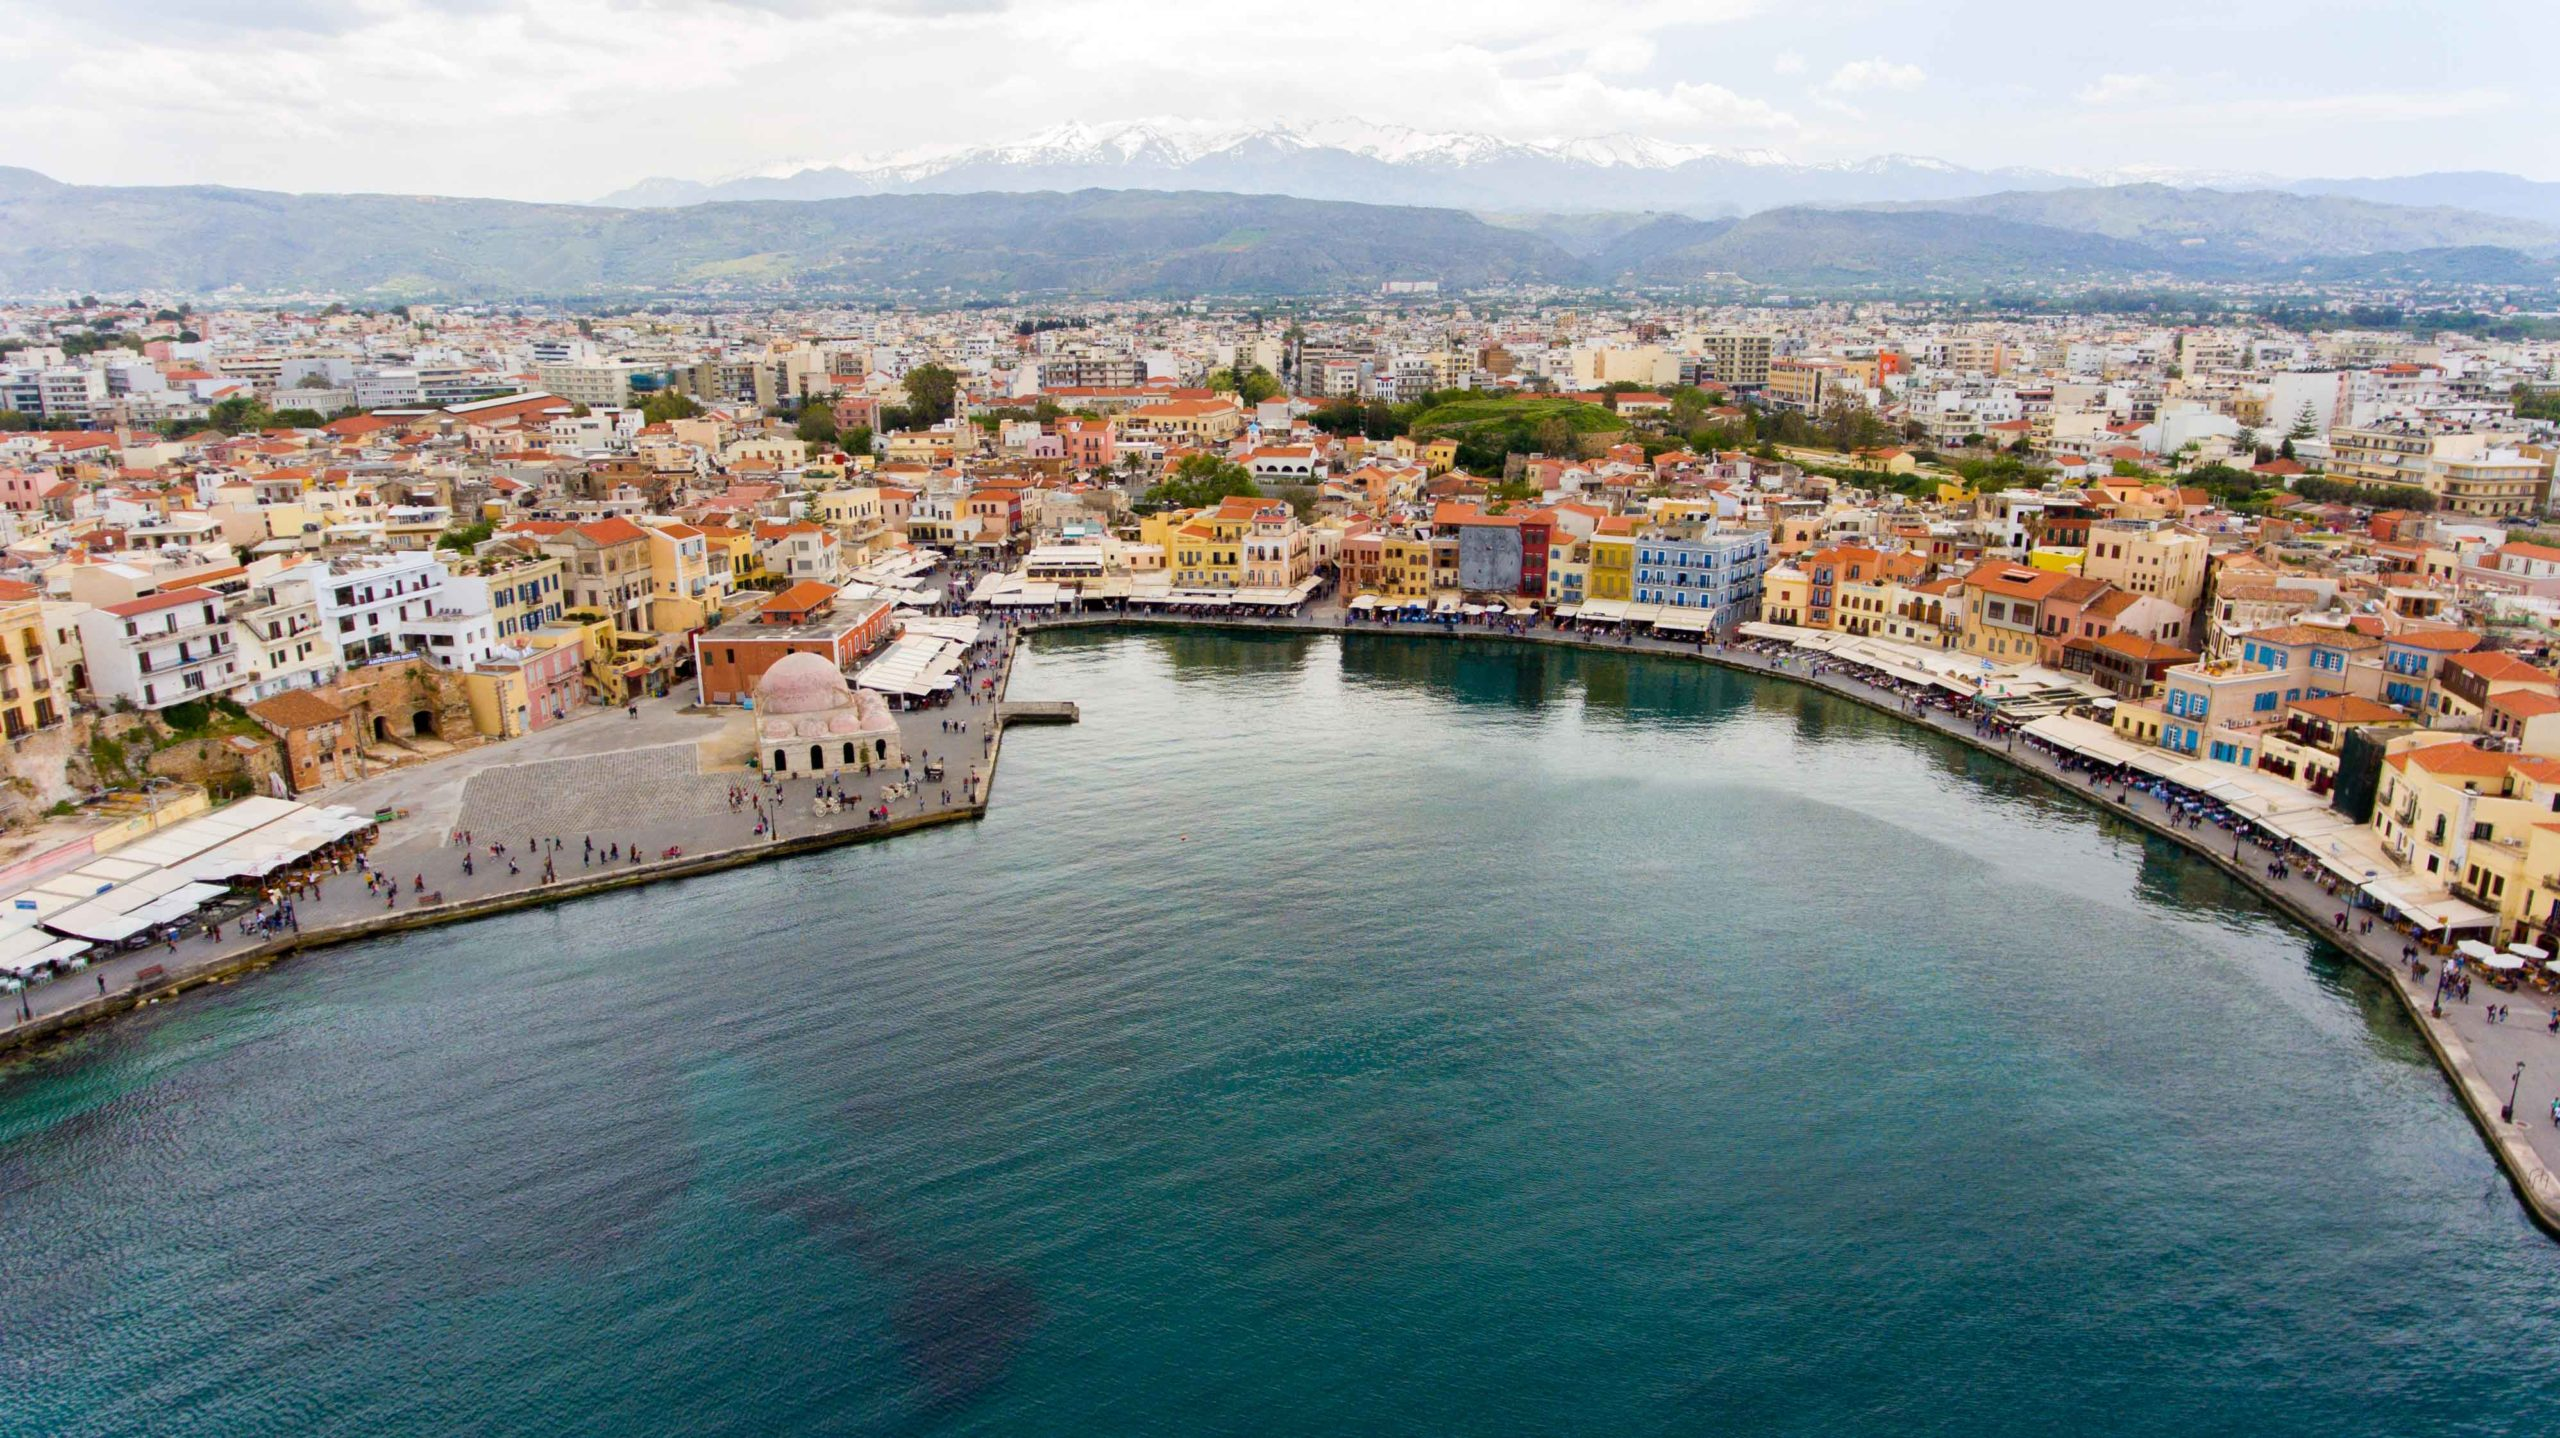 Canva---Grece-chania-town-drone-footage